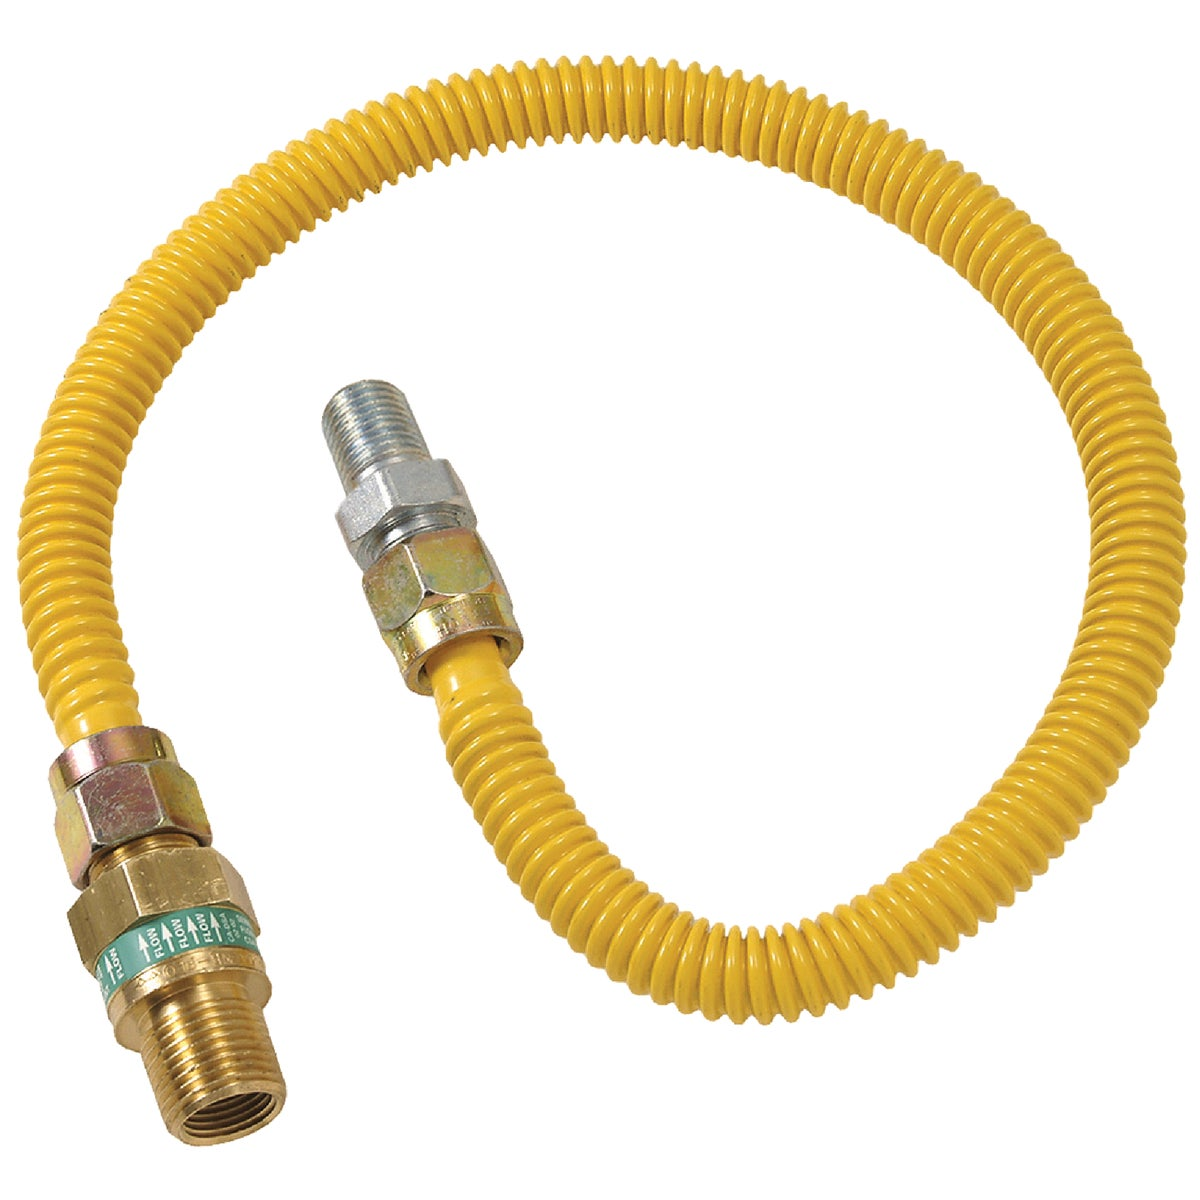 1/2X1/2-60 GAS CONNECTOR - CSSD44E-60P by Brass Craft